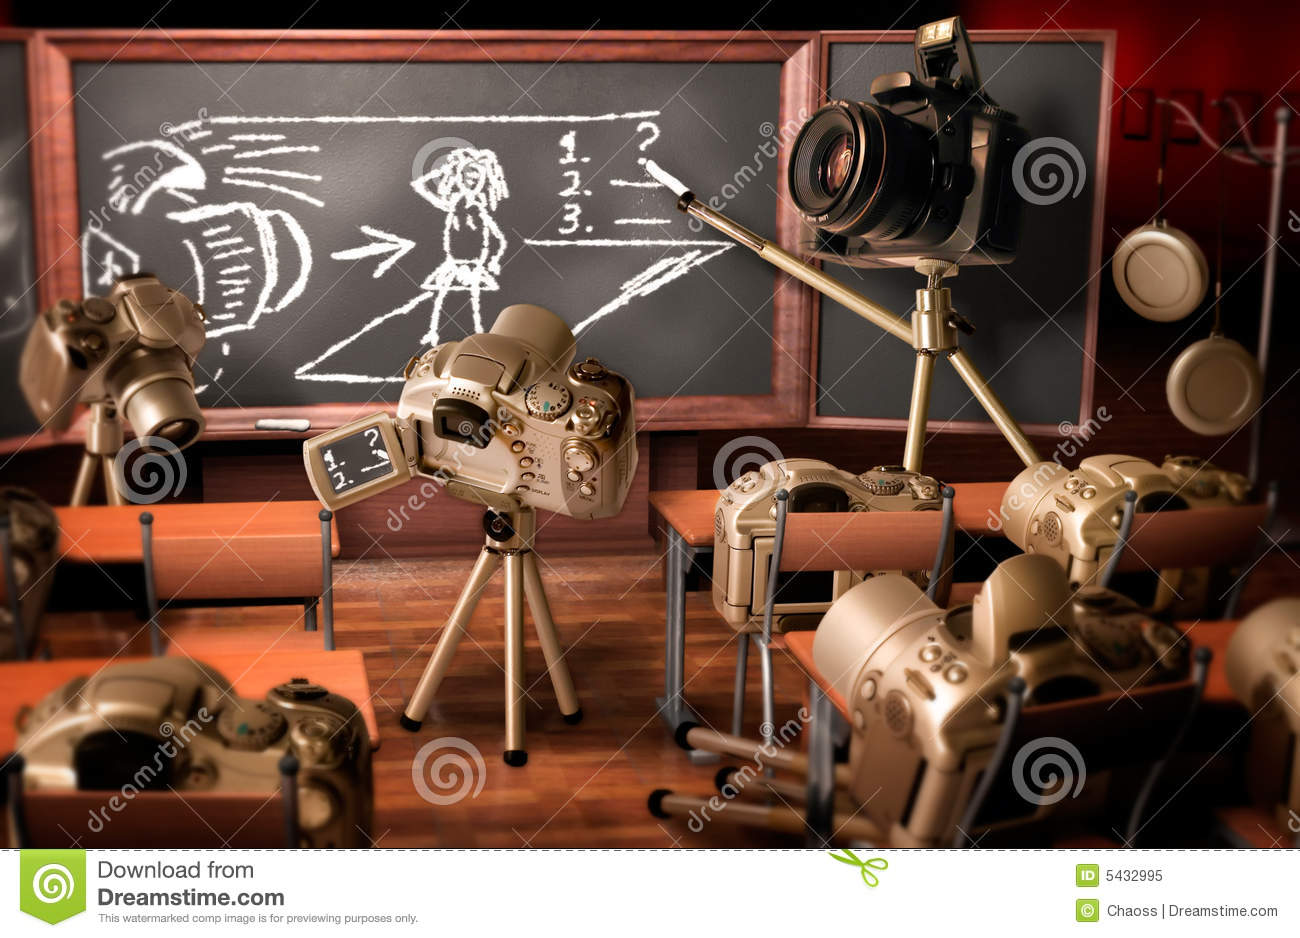 Photography Lesson Royalty Free Stock Photo - Image: 5432995